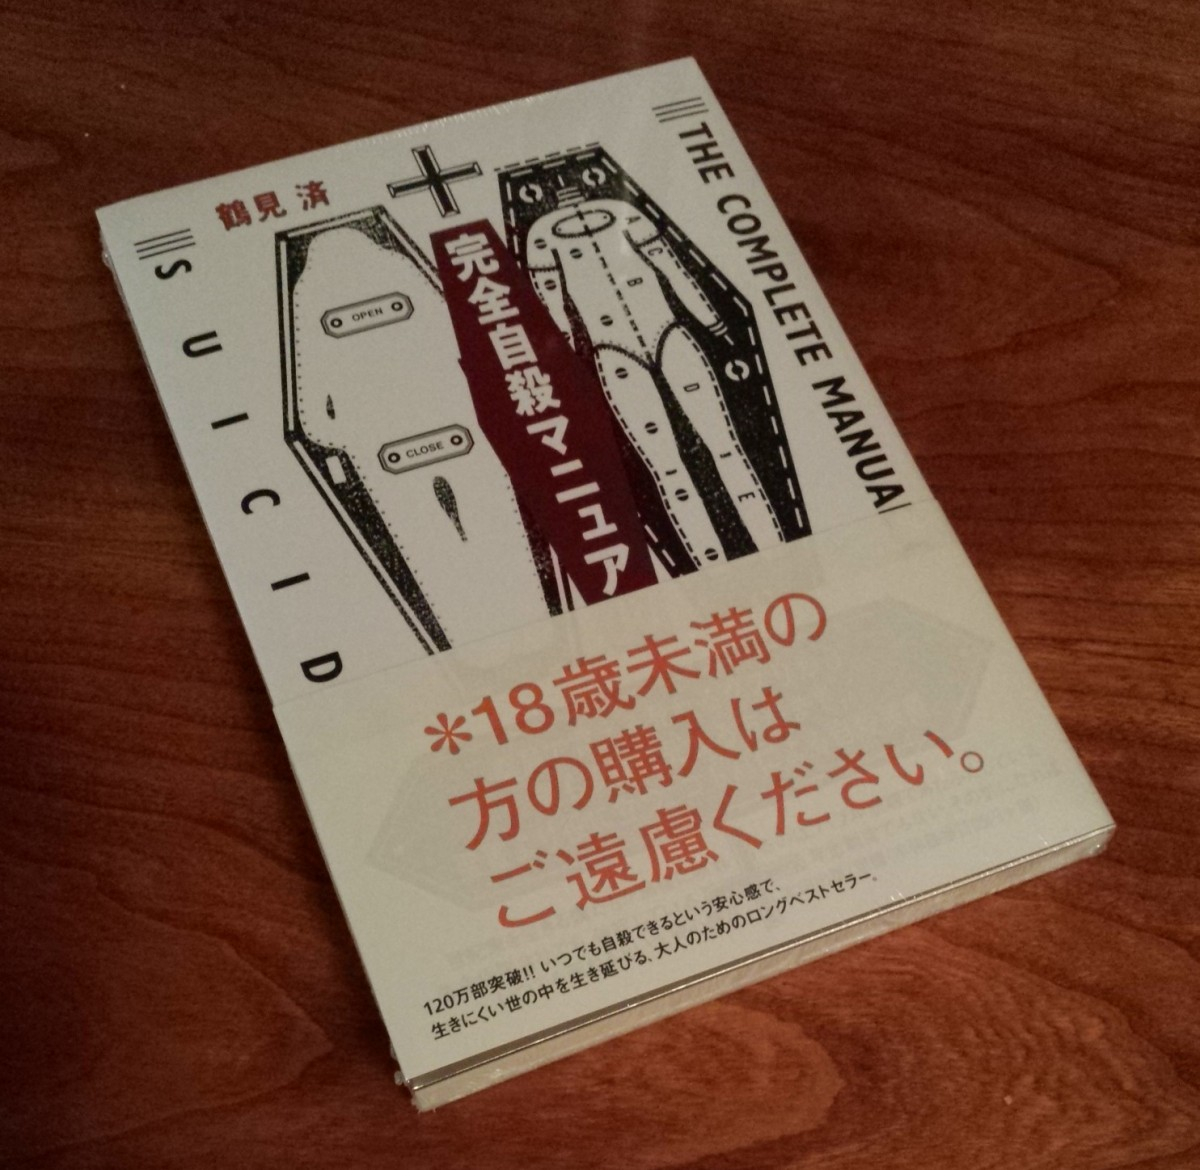 Japan's #1 Seller: The Suicide Manual